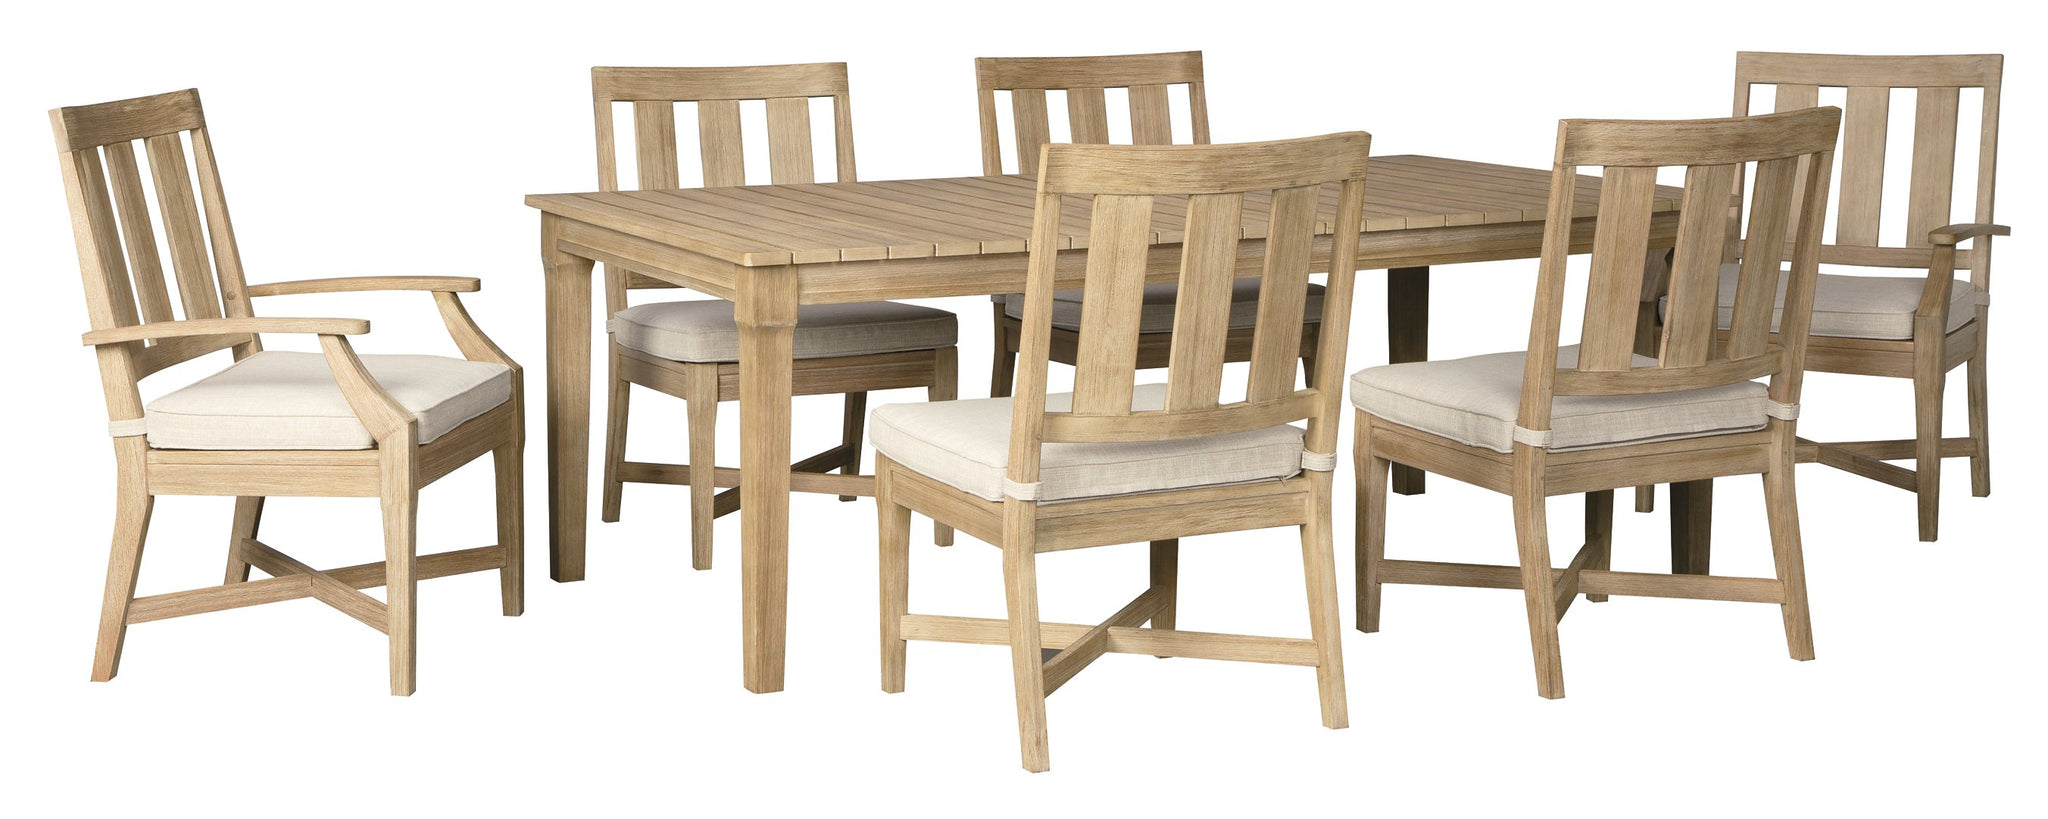 Clare View Signature Design 7-Piece Outdoor Dining Set